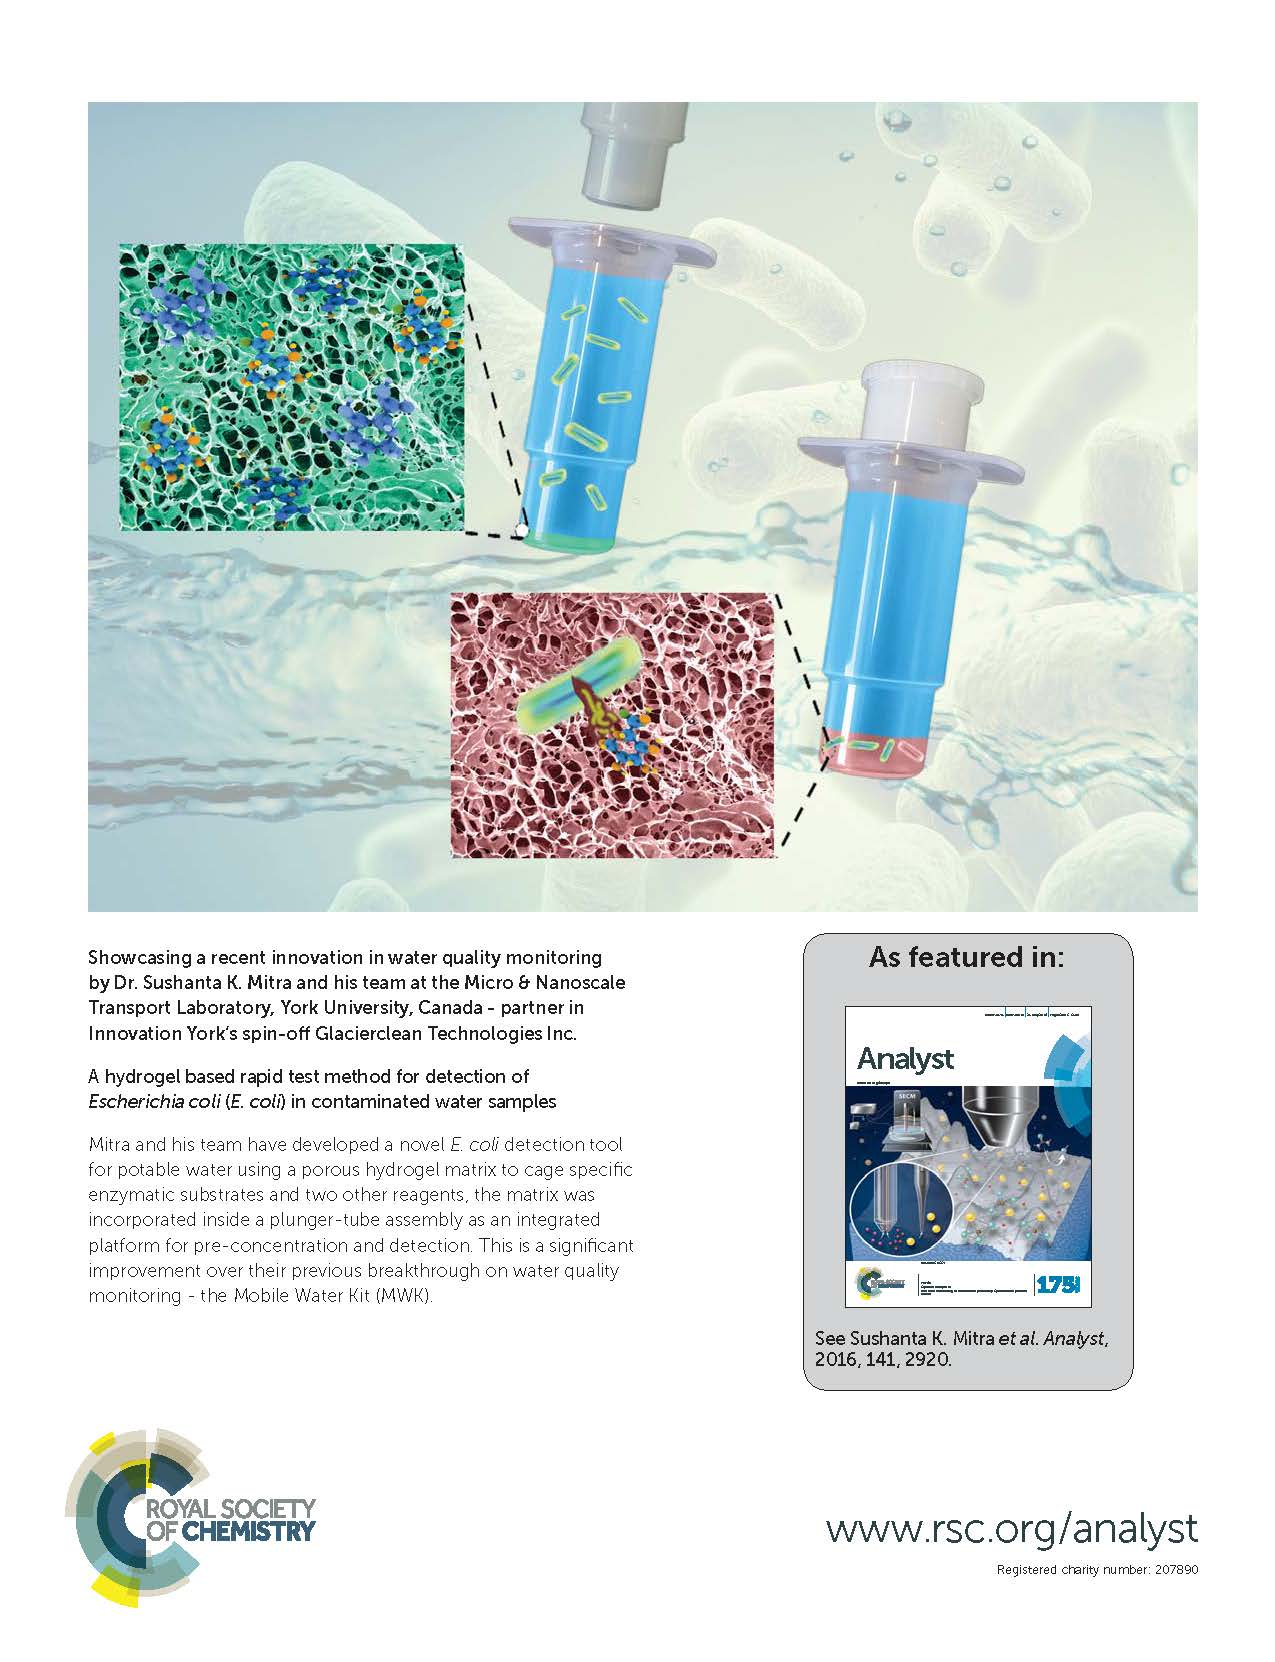 Hydrogel based rapid E. coli detection system, Cover article for Analyst